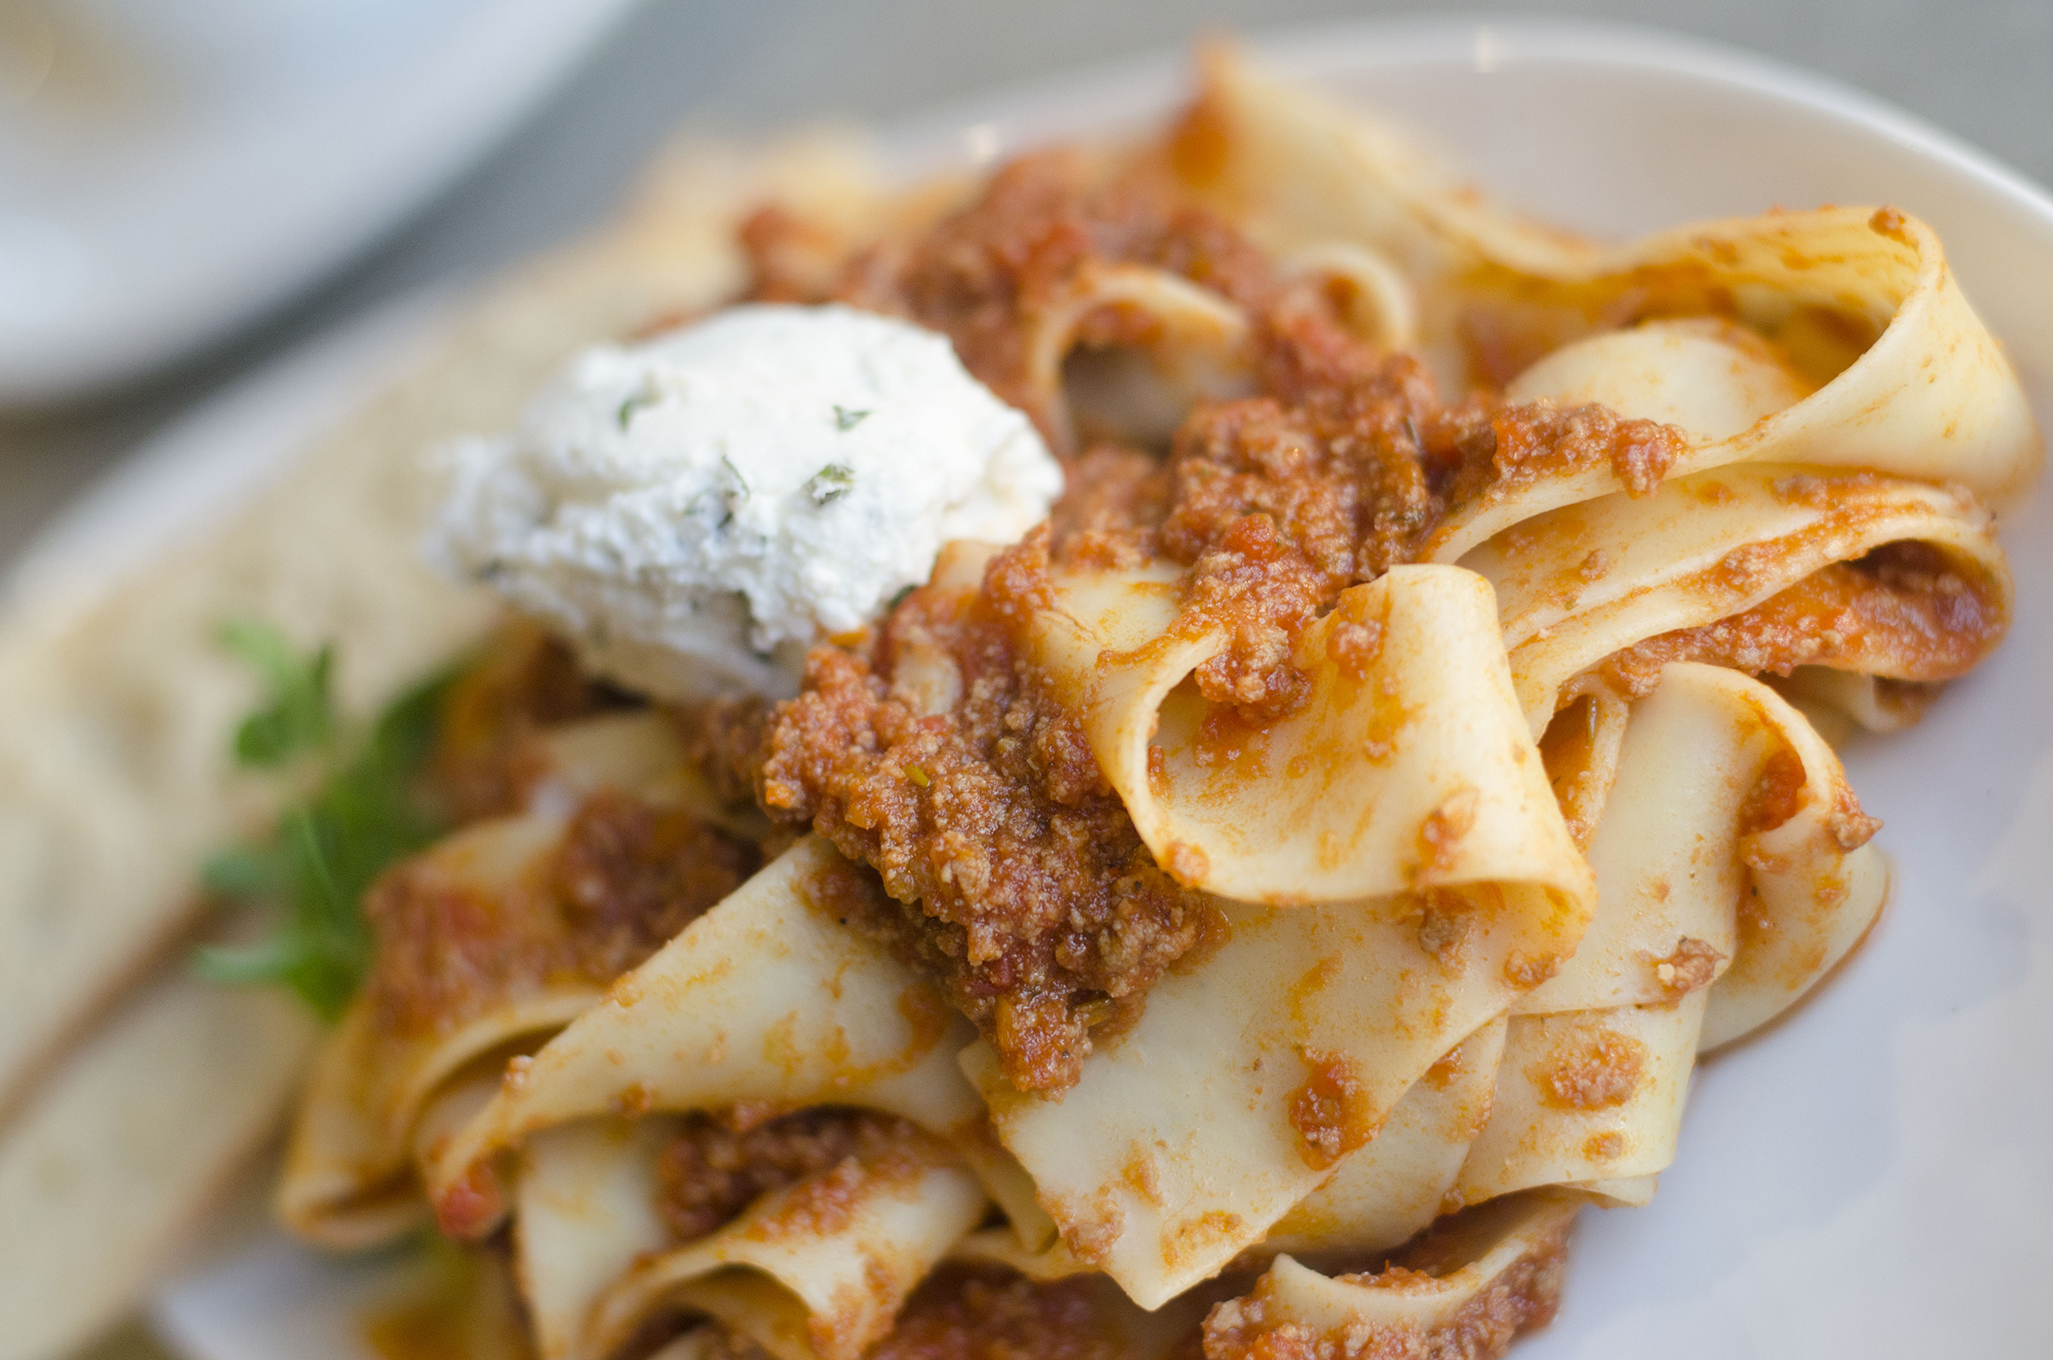 Pasta with lamb ragu from Paglione Estate Winery in Essex, Ontario.